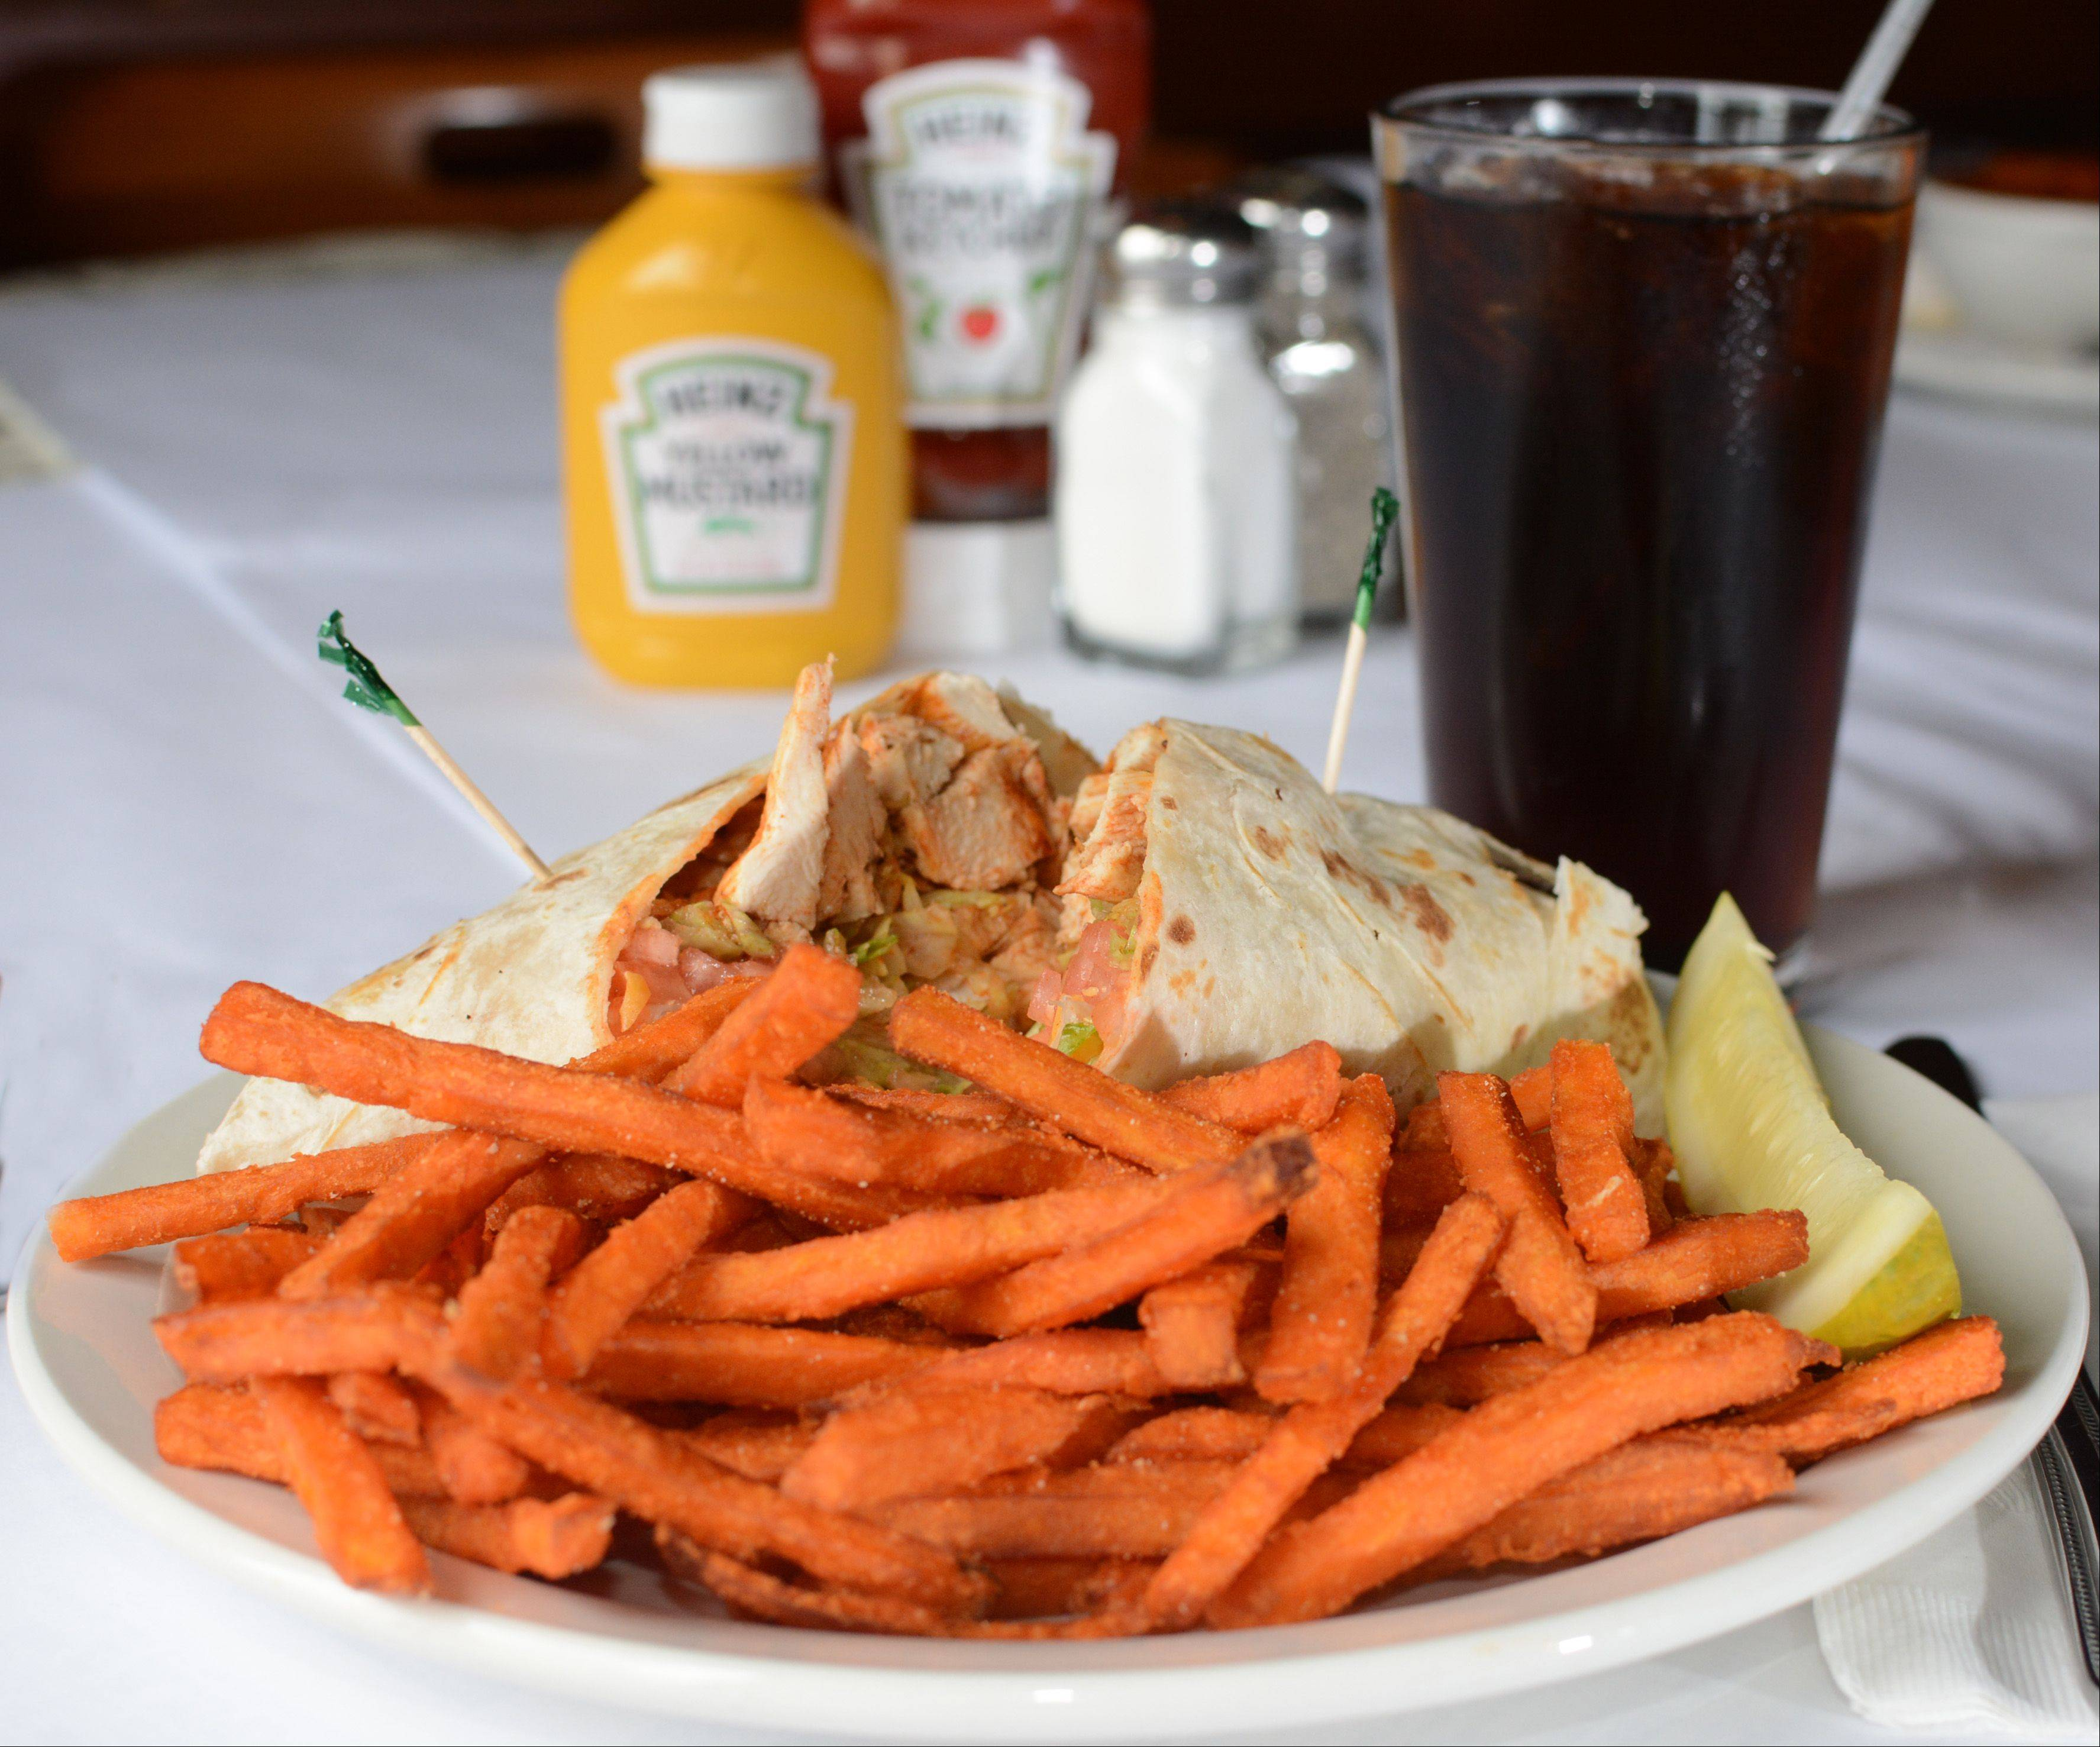 The buffalo chicken wrap is hot, but not too hot, at Brandt's in Palatine.